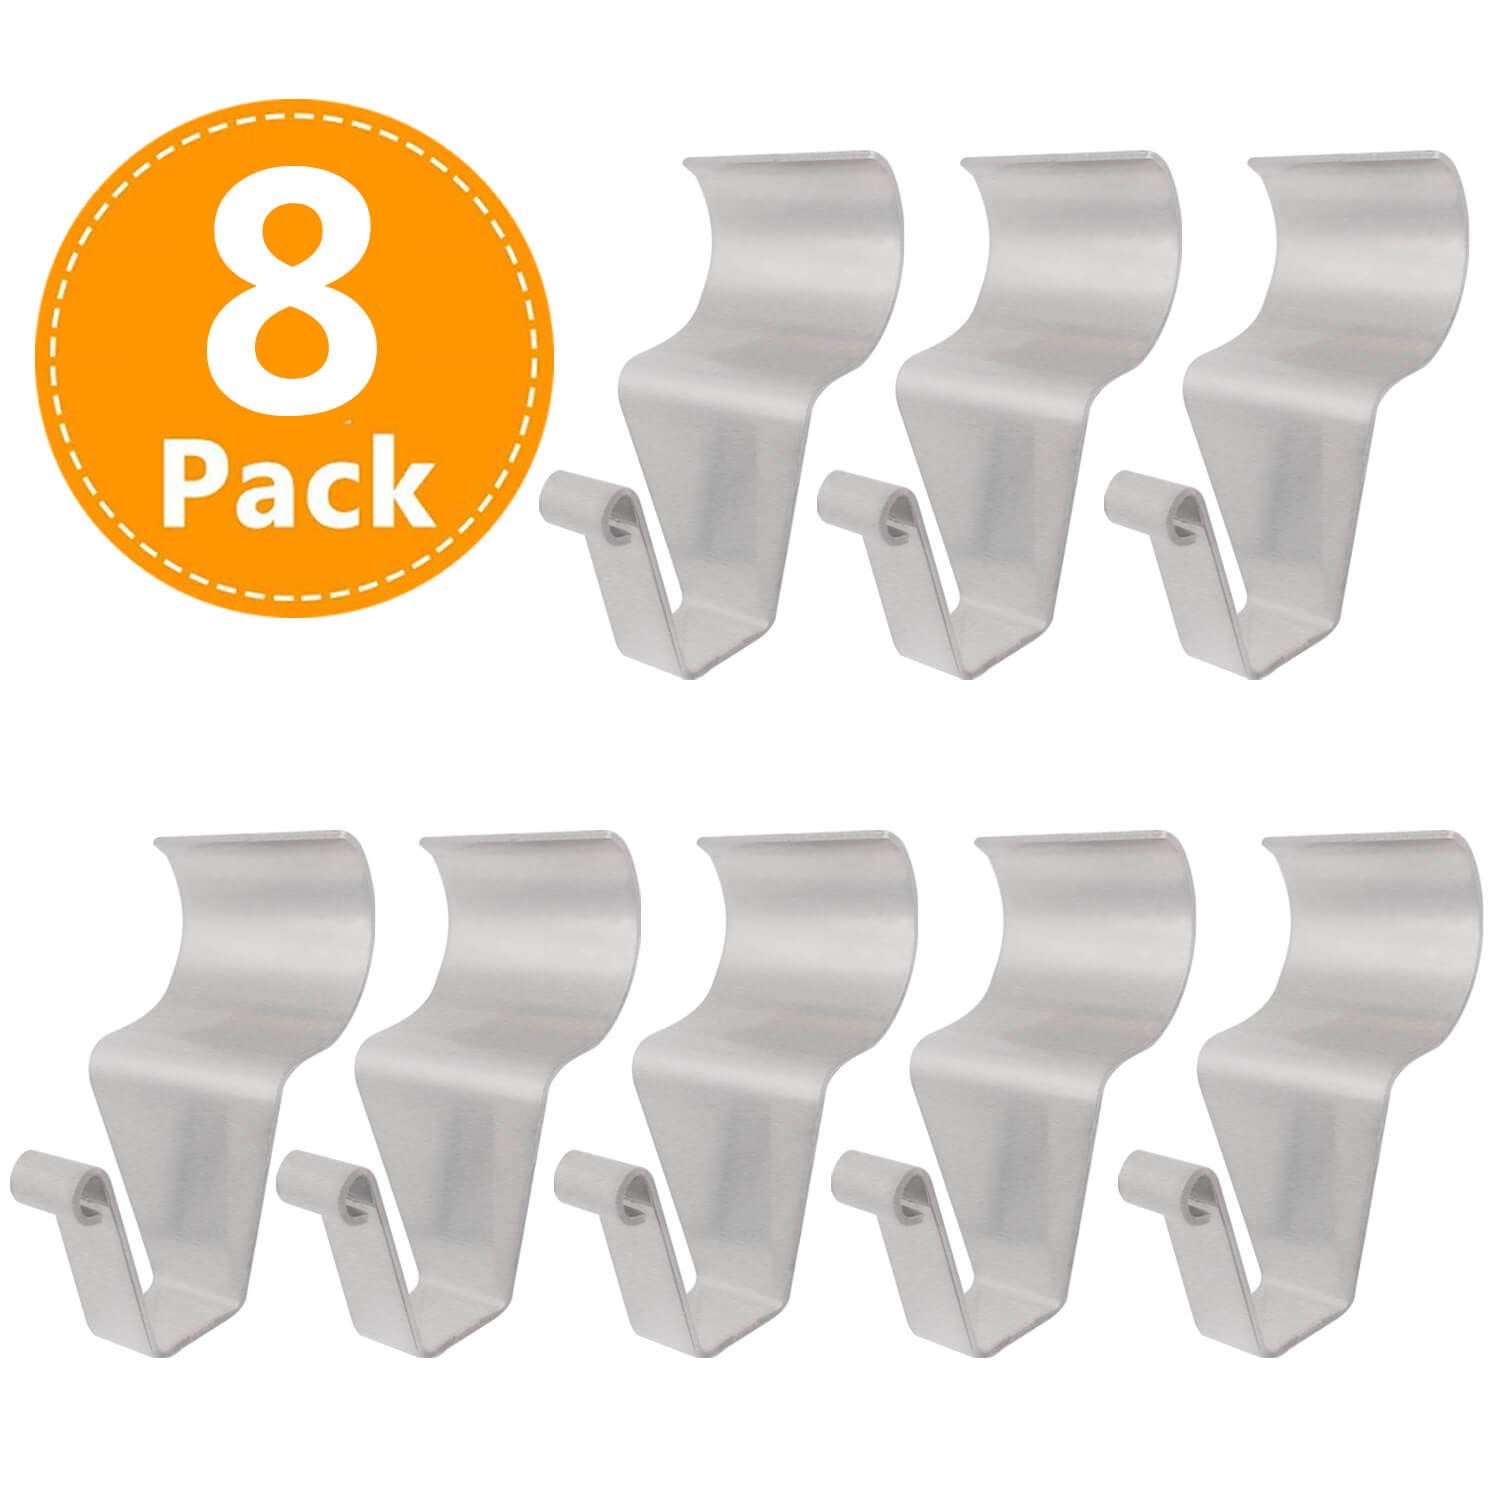 Vinyl Siding Hooks for Hanging Heavy Duty Light Mailbox Planter Hanger 8 Pack